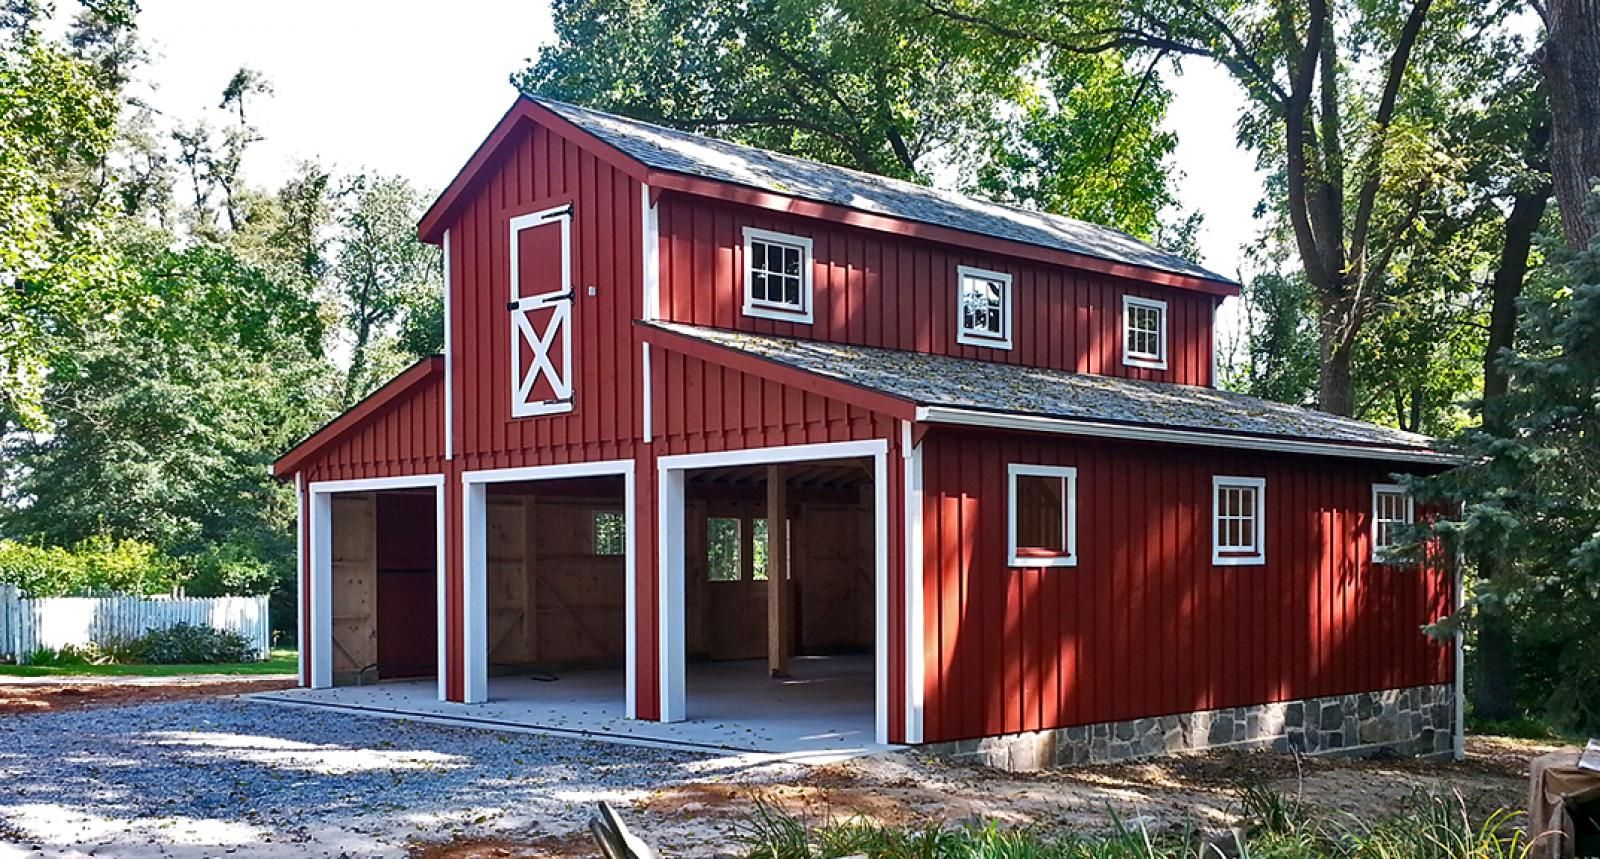 Related Image Garages Pinterest Barn Apartments And: barn with apartment plans